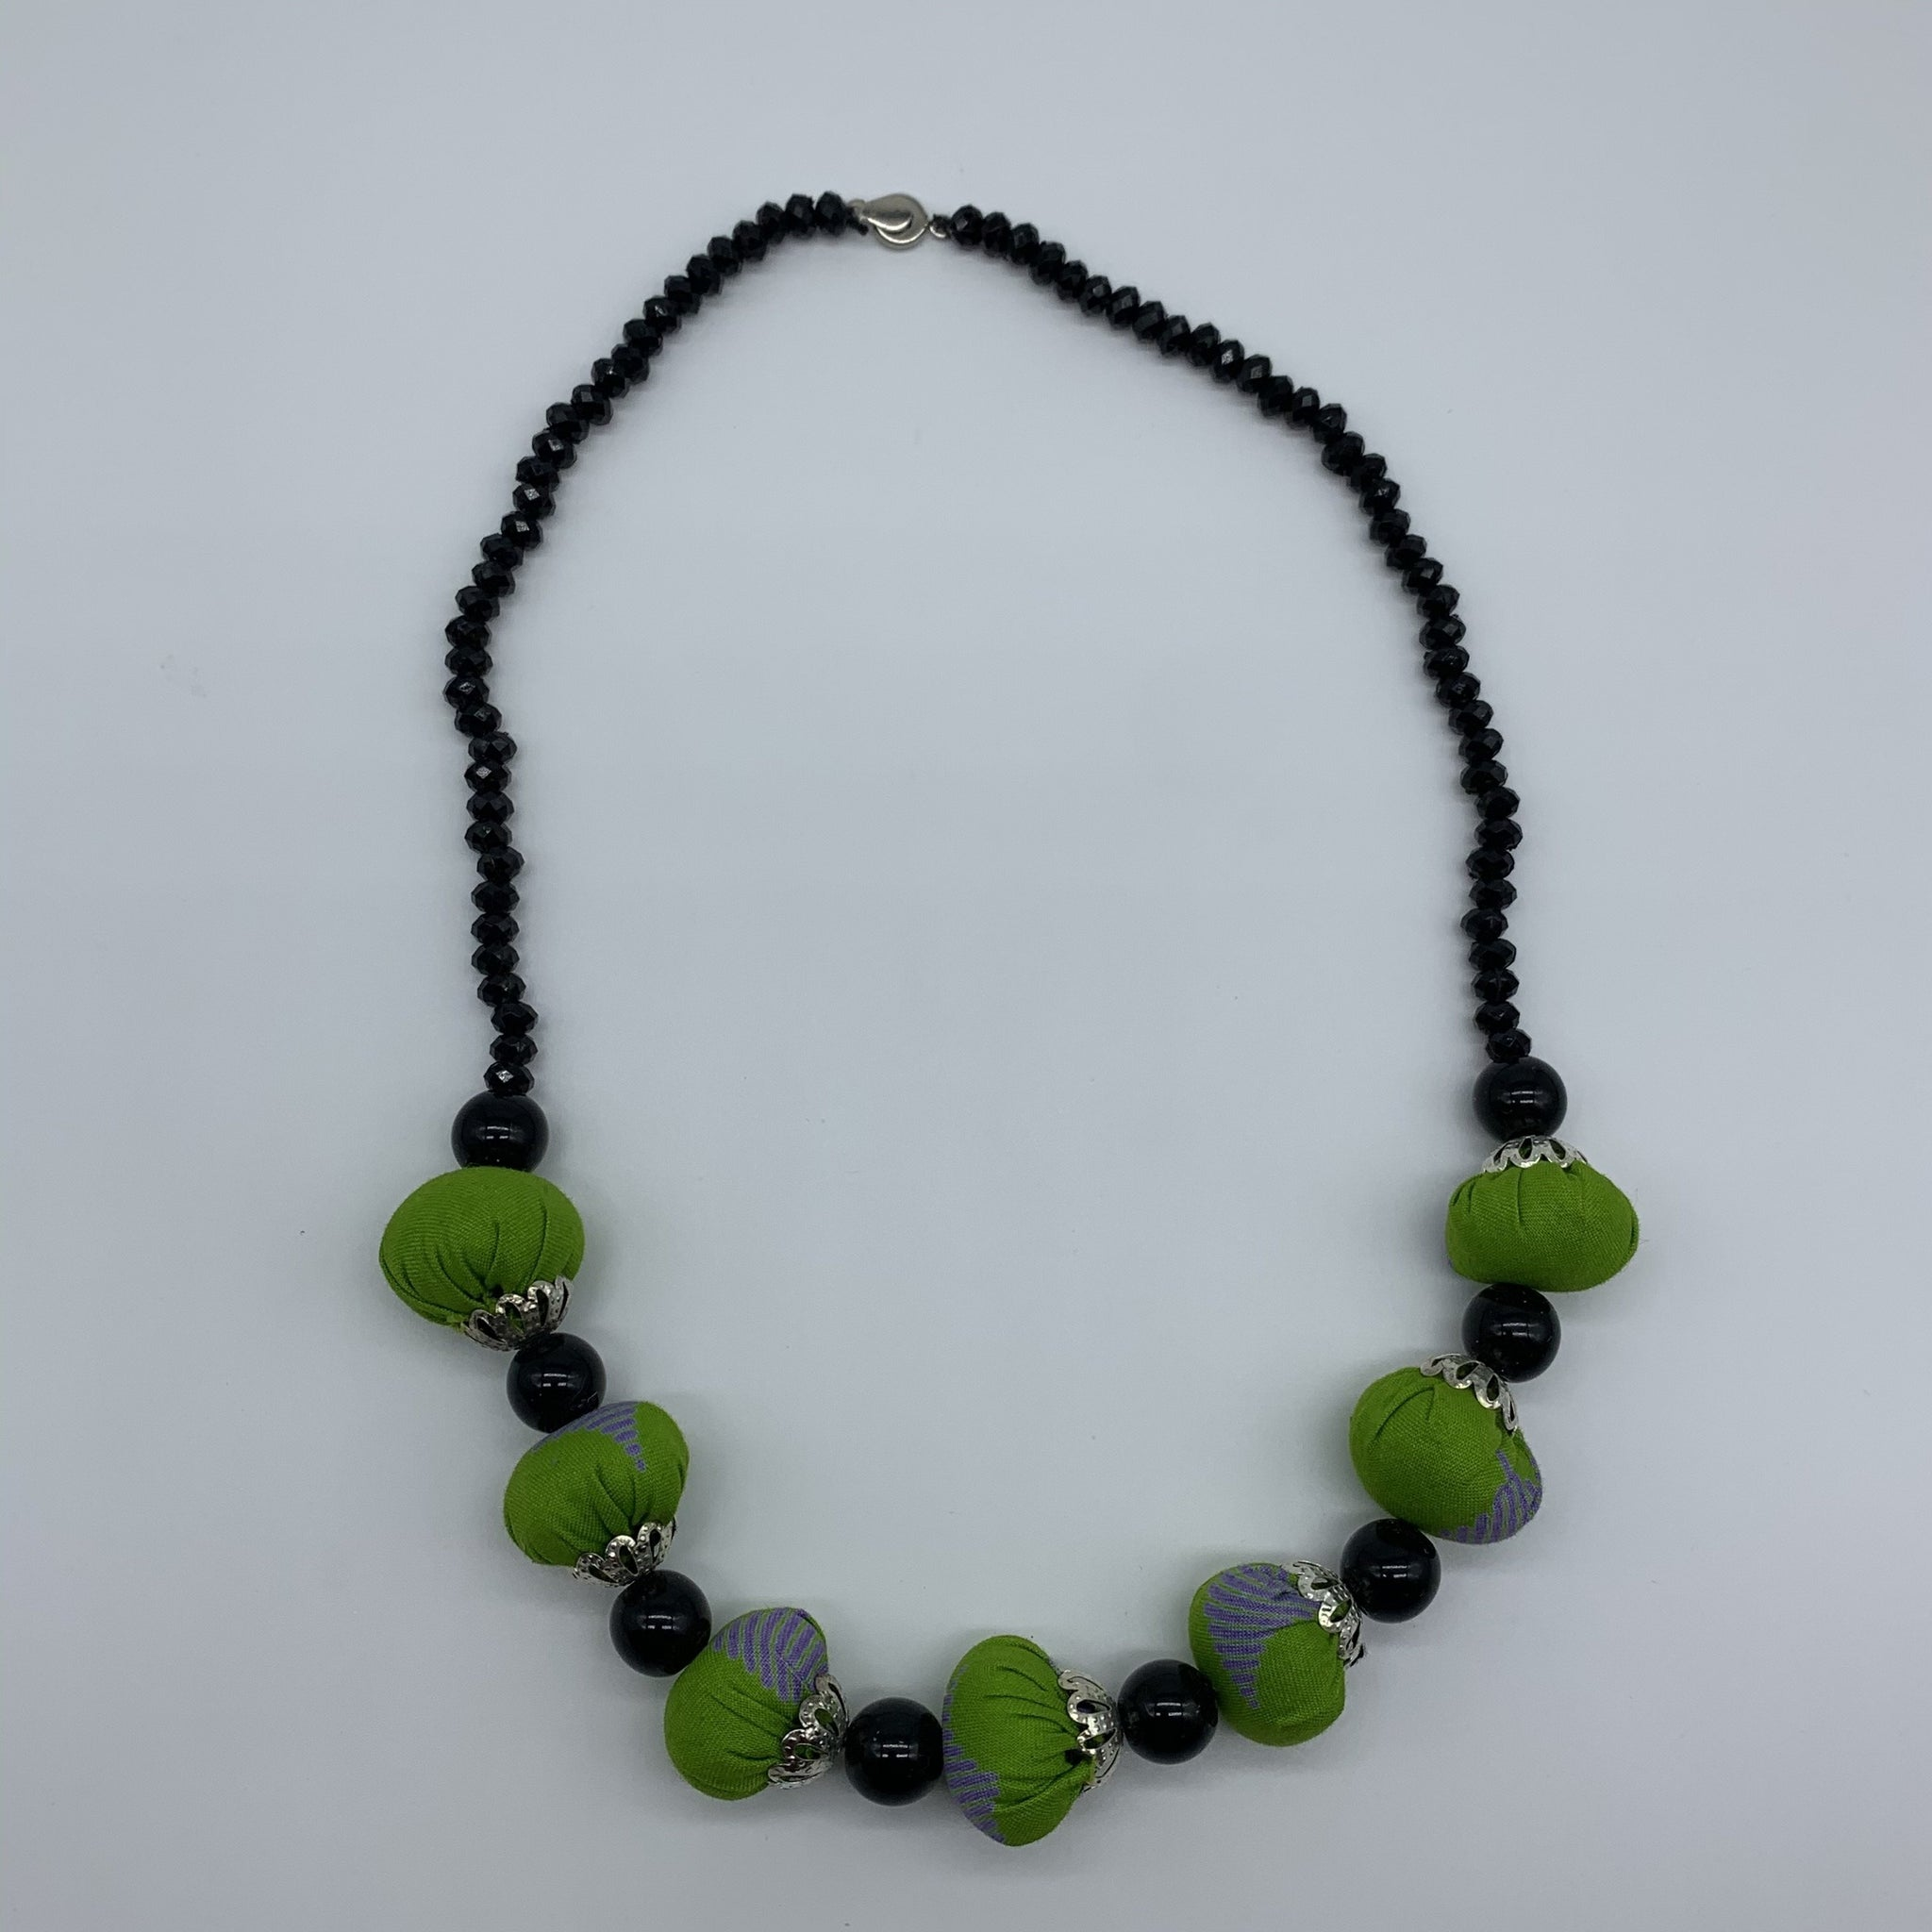 African Print Necklace W/ Beads-Green Variation